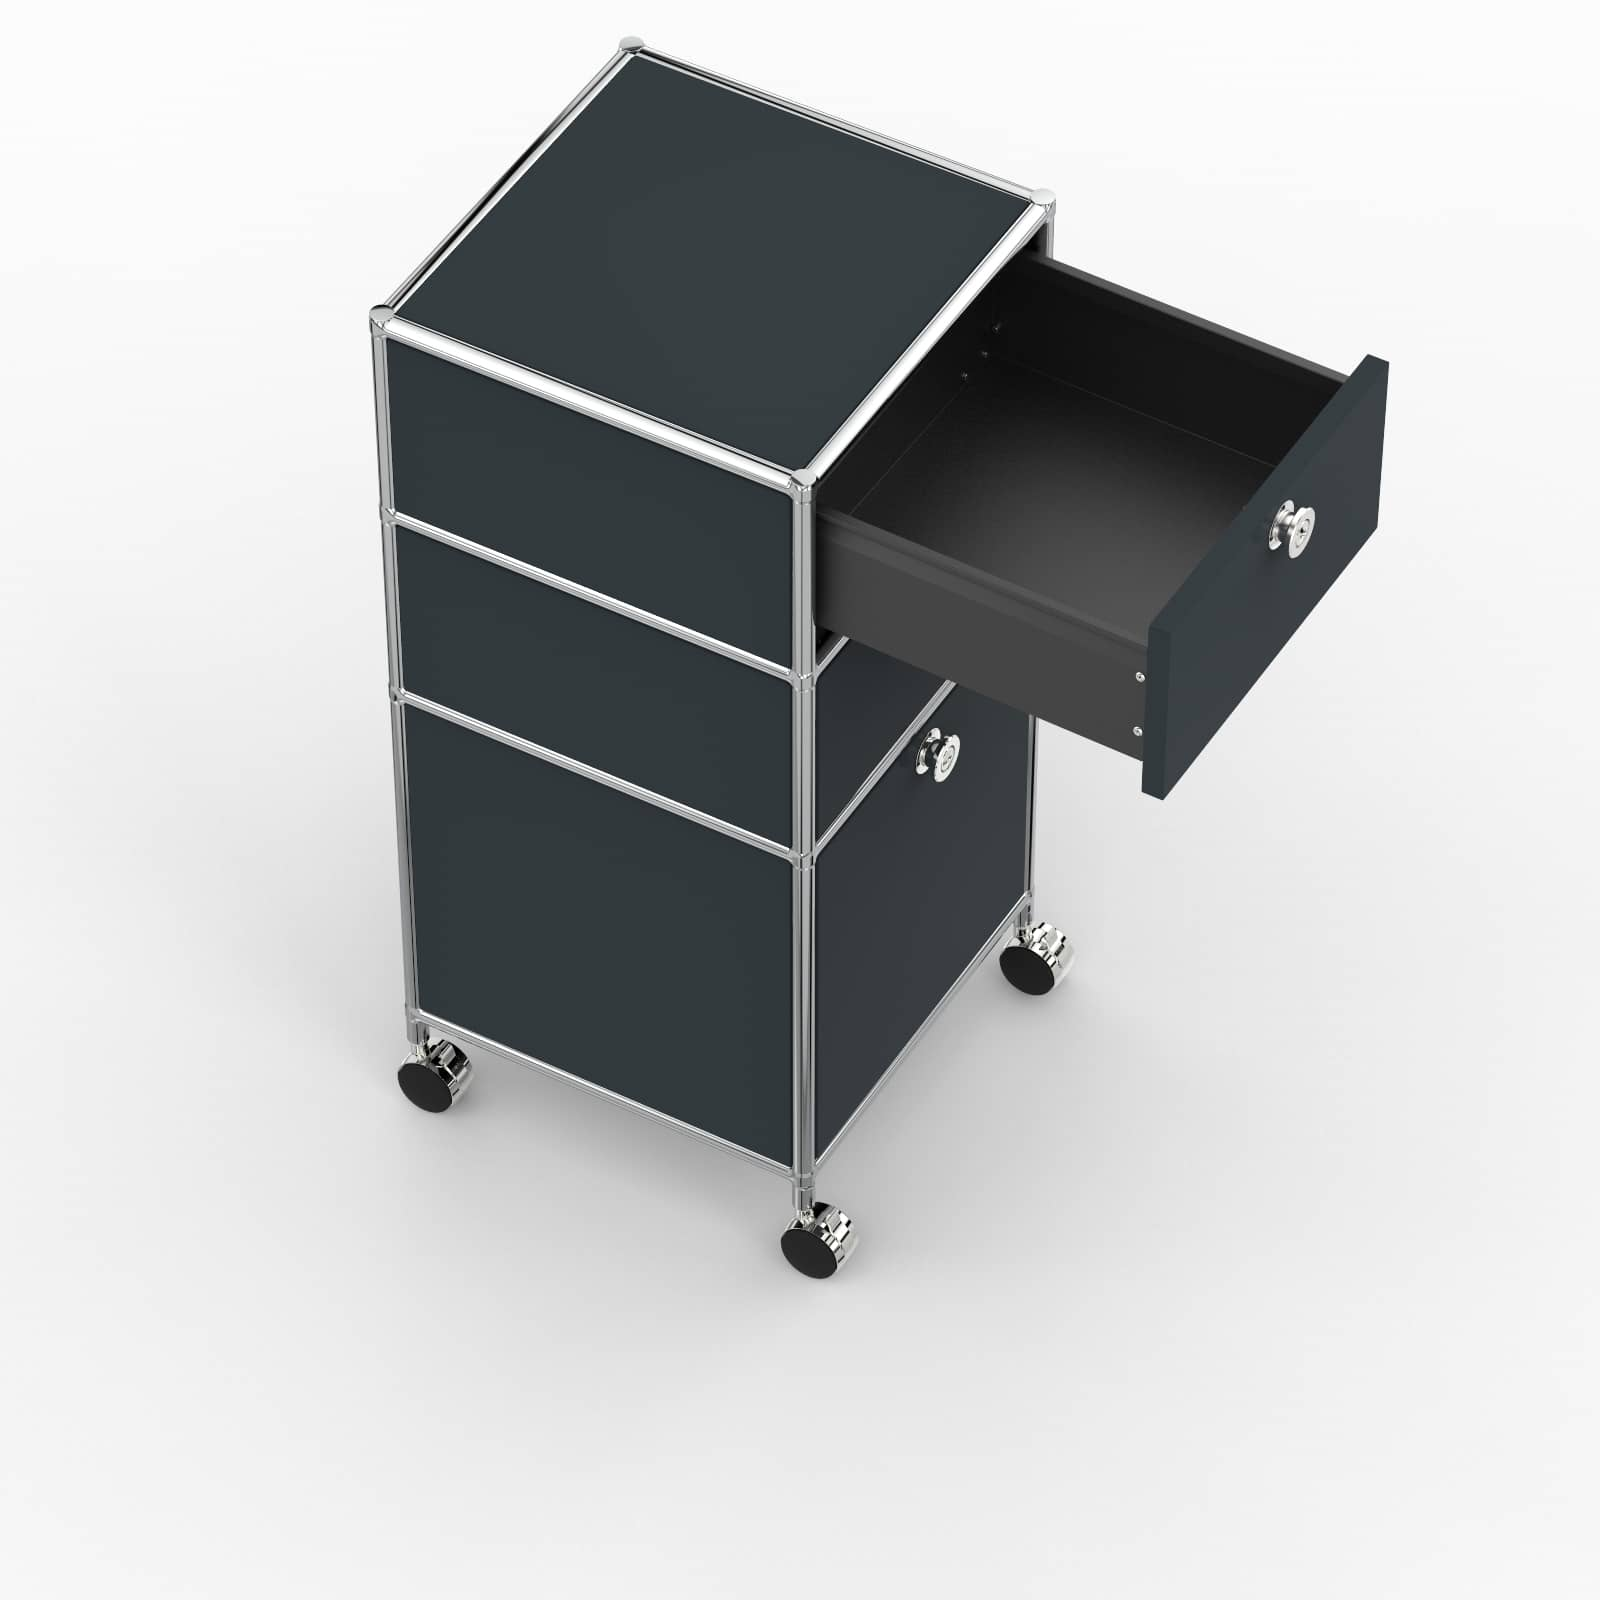 Rollcontainer Design Rollcontainer 40cm 2xes 1xhg Awr Anthrazitgrau Ral